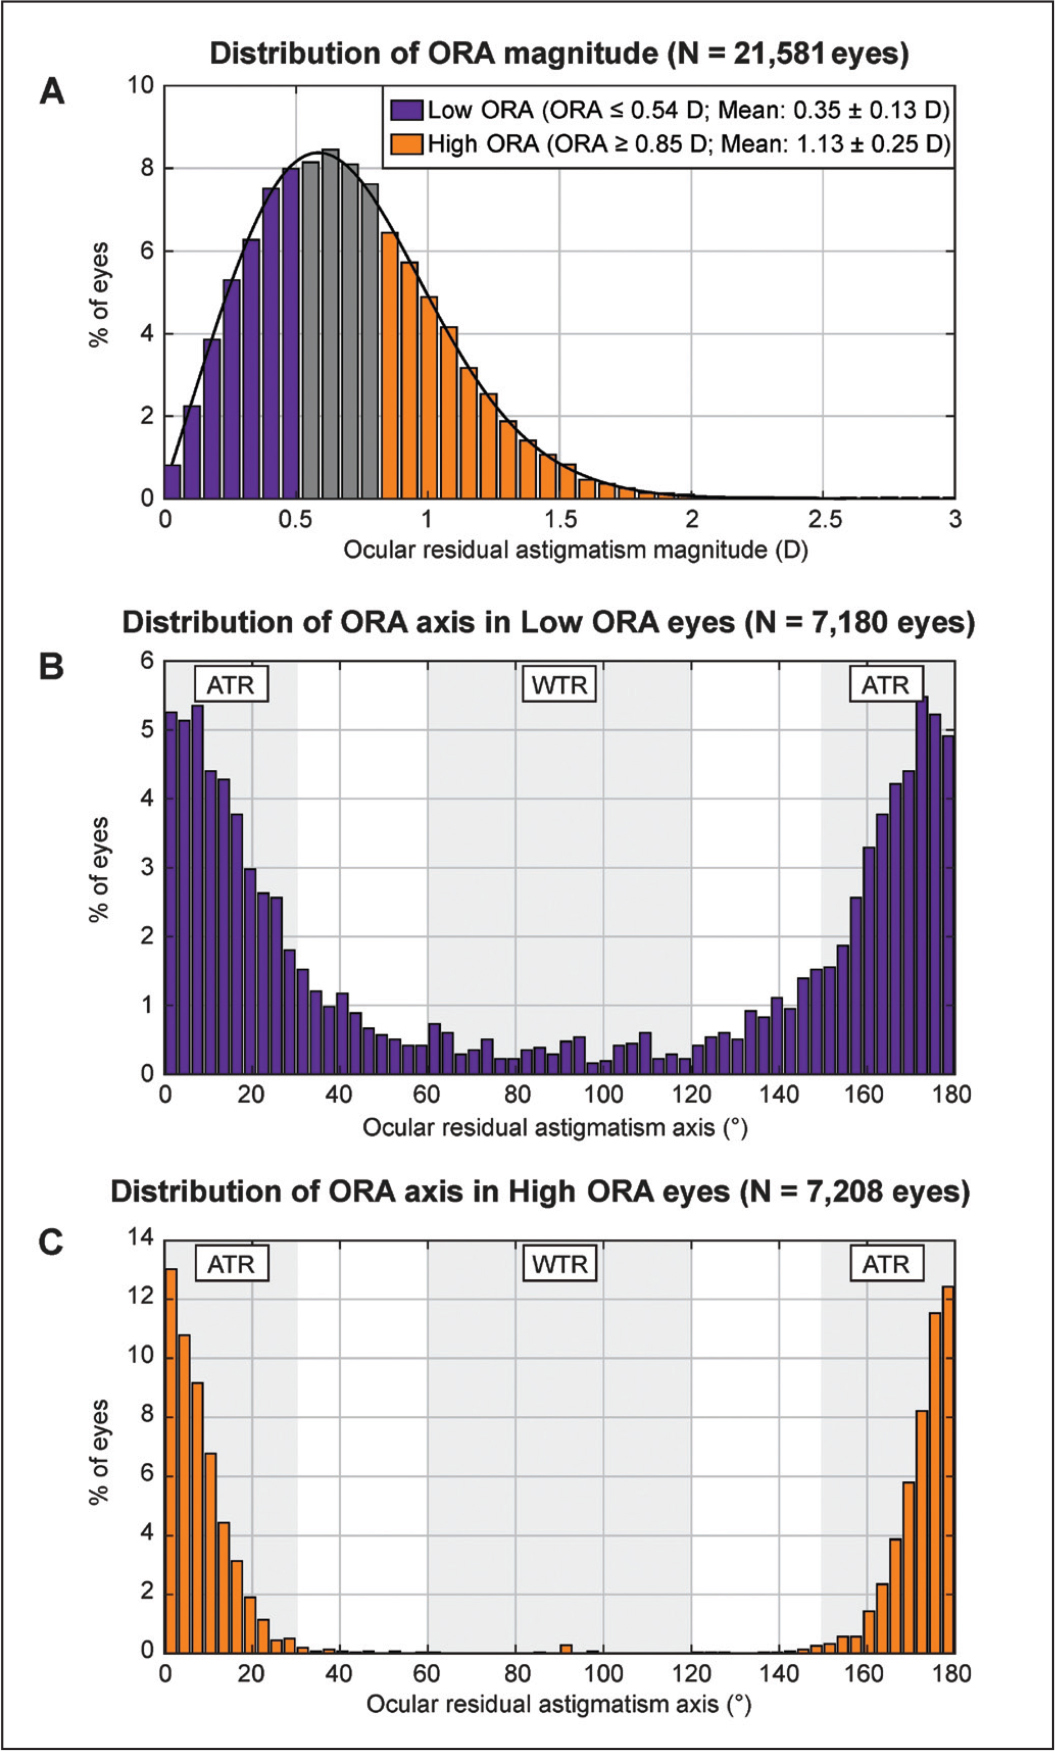 (A) Distribution of the ocular residual astigmatism (ORA) in 21,581 eyes. The thick black curve represents the fitting of the right-skewed normal distribution, having good coefficient of determination (R2 = 0.99). The purple and orange bars represent the segregation of the low and high ORA groups, respectively. (B and C) Distribution of the ORA axis in eyes with low and high ORA, respectively. ATR = against-the-rule; WTR = with-the-rule; ORA = ocular residual astigmatism; D = diopters